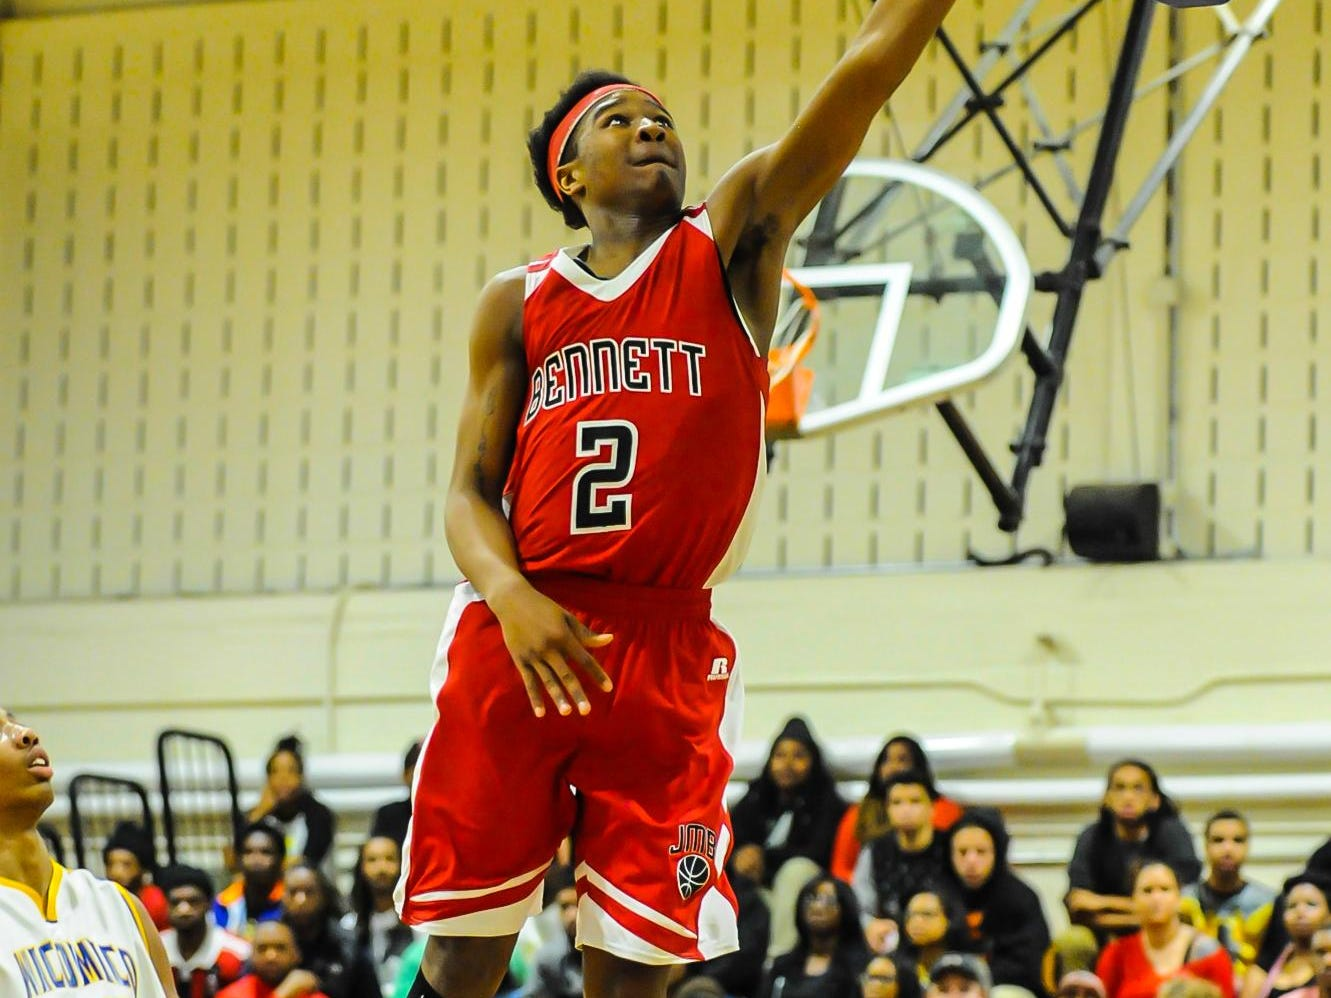 Jorden Duffy goes for a layup against Wicomico High.